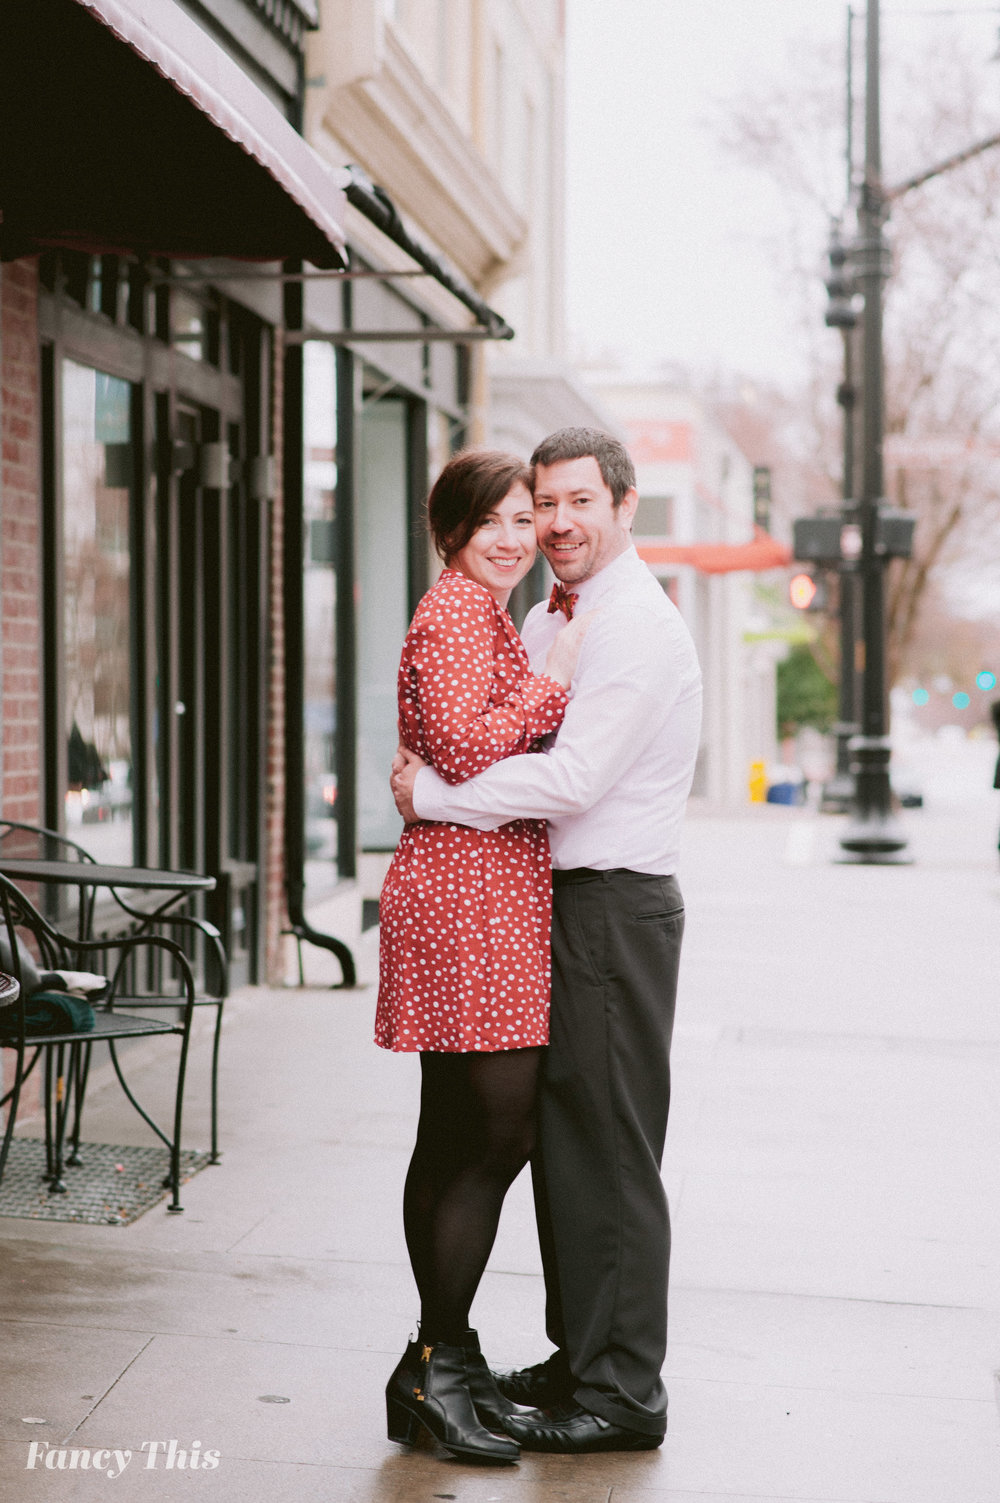 raleighengagementdowntown_fancythis_ncweddingphotographer-32.jpg